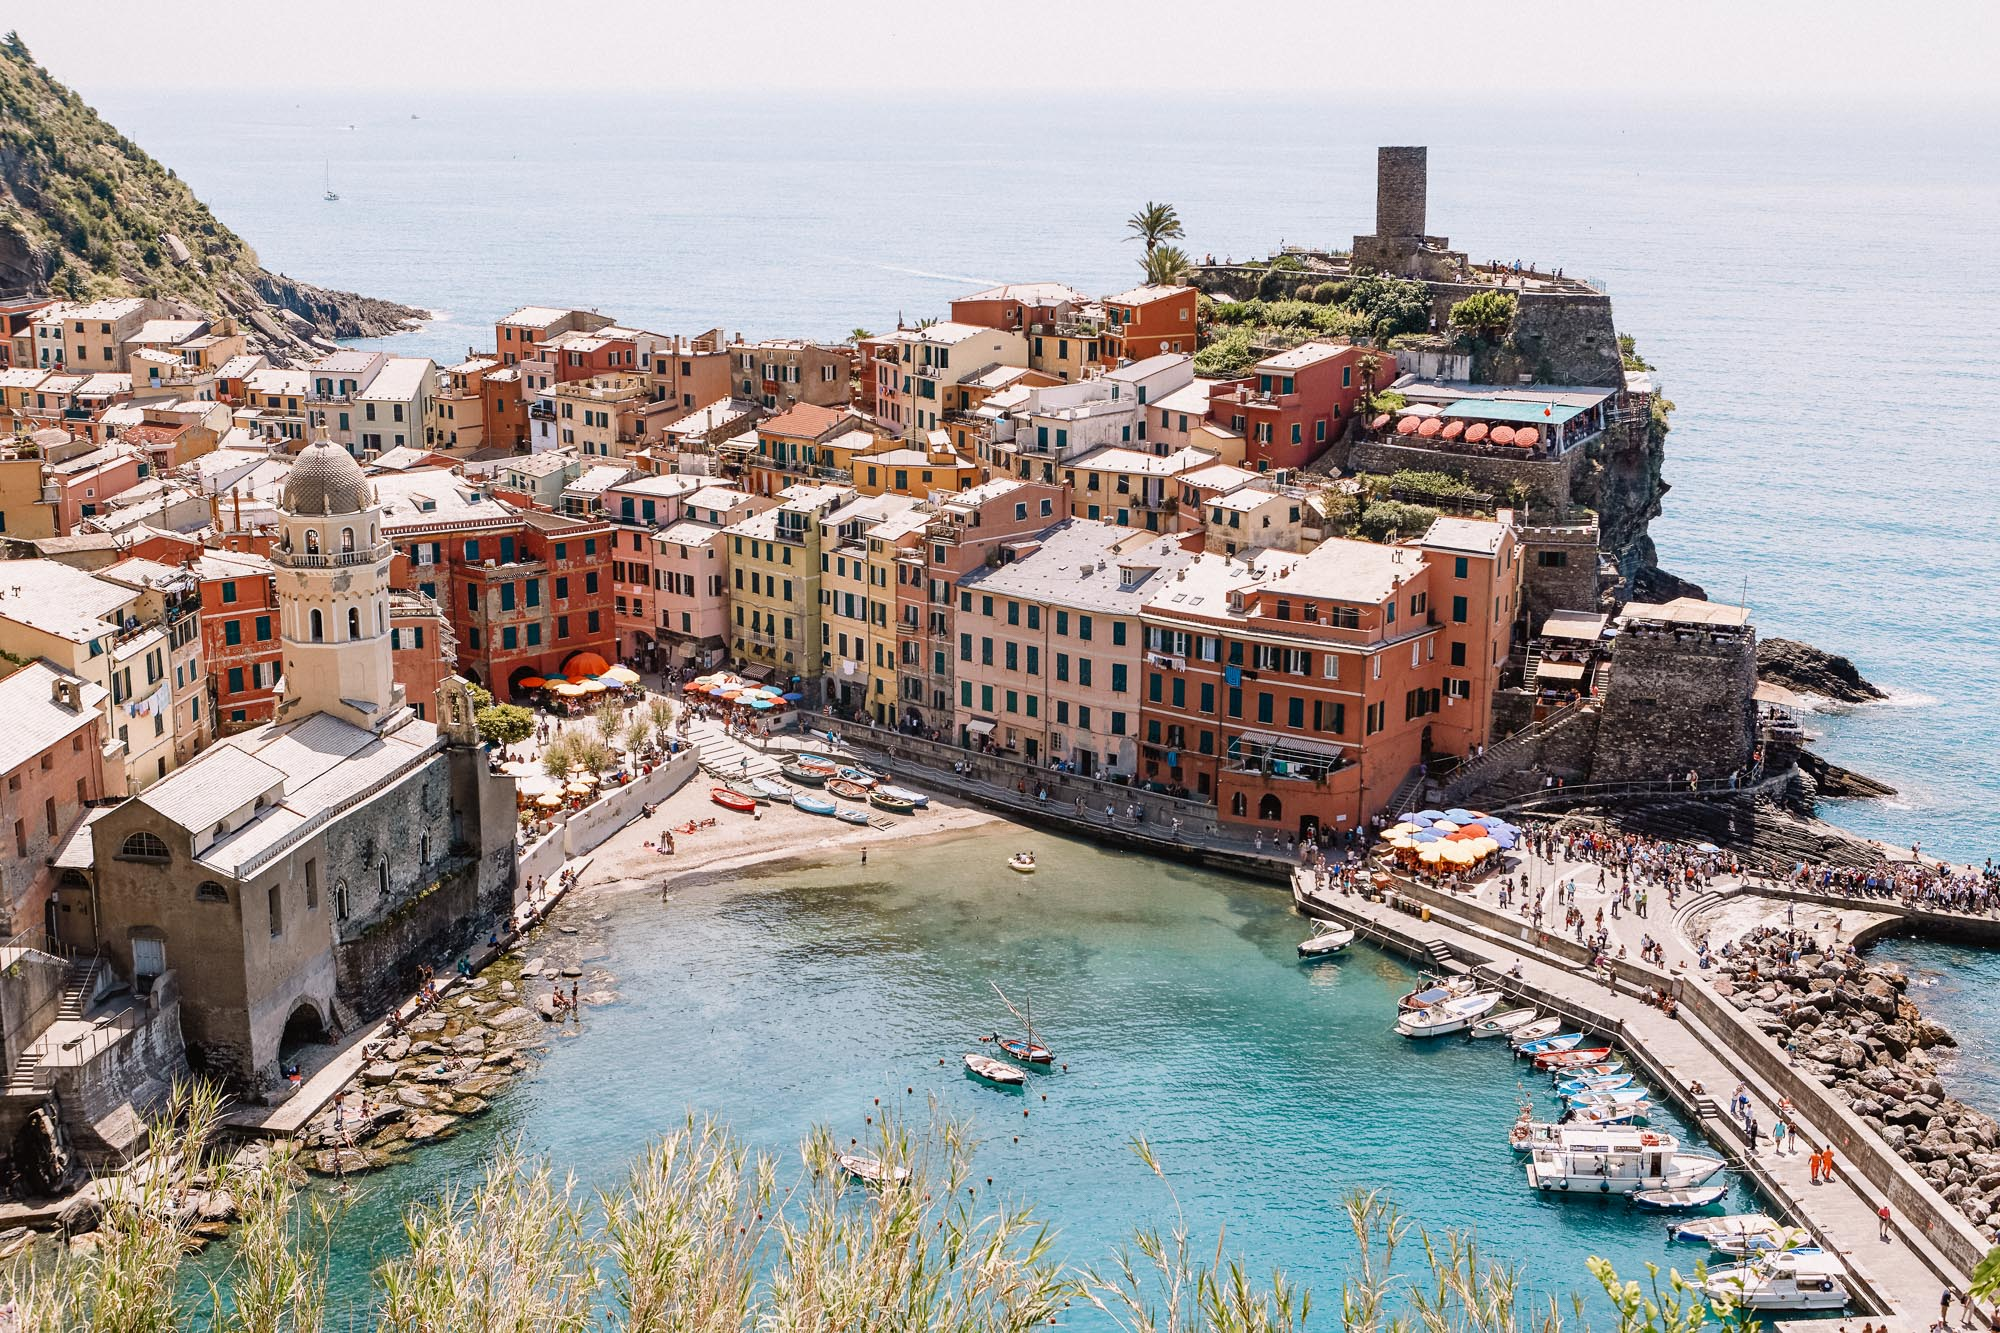 Cinque terre in Italy for our three month Europe road trip